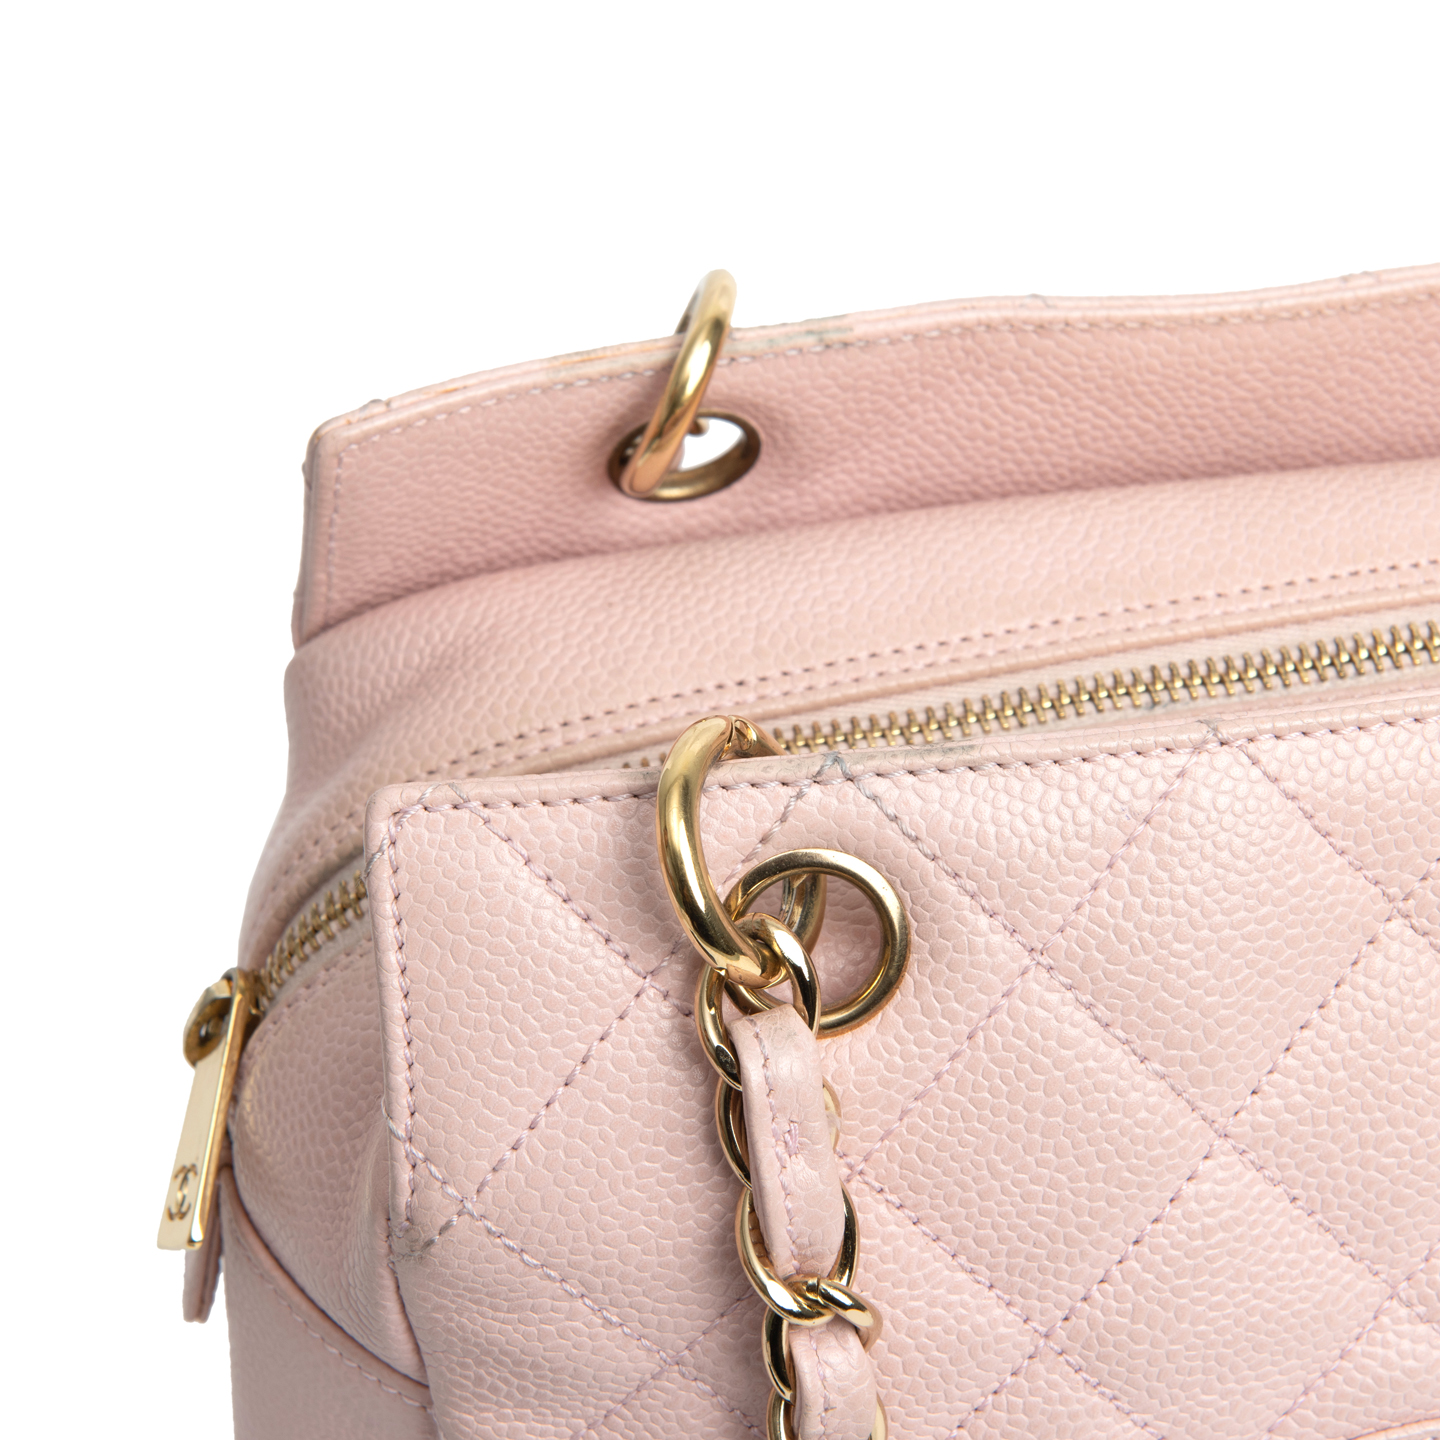 3d7fb769887c ... Chanel Pink Quilted Caviar Leather Petite Timeless Shopping Tote Bag 06  ...